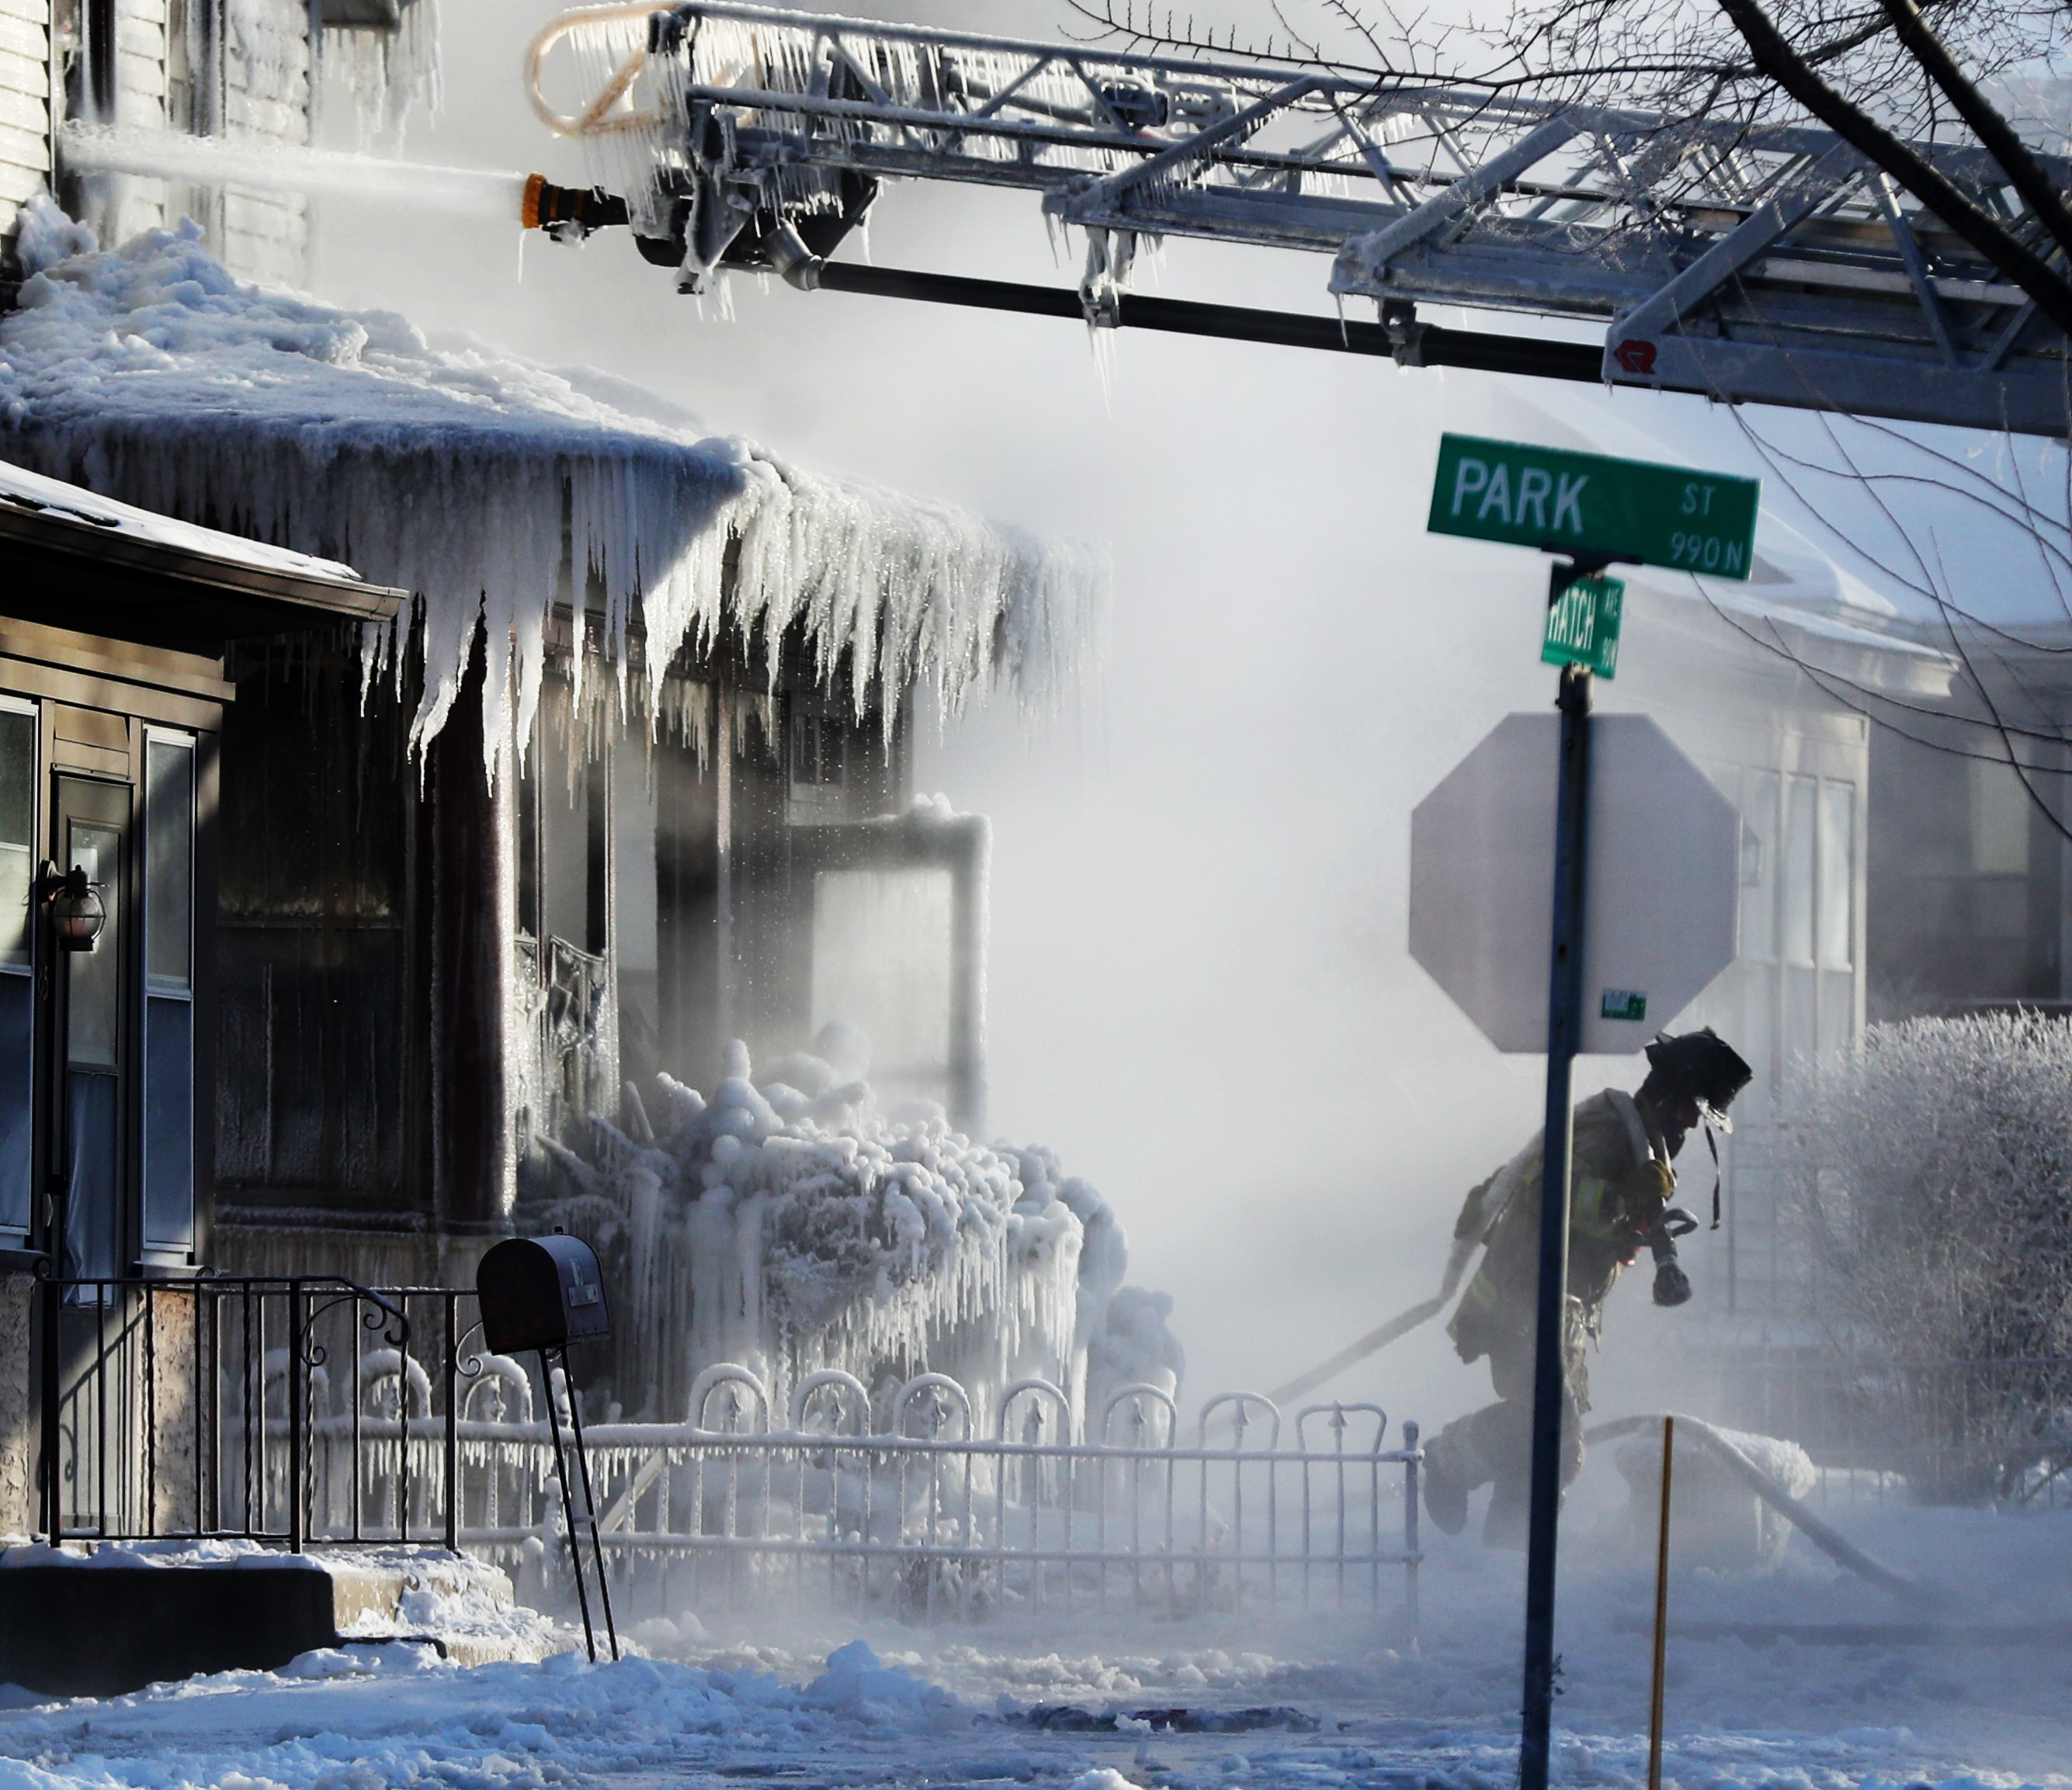 St. Paul firefighters at the scene of a house fire at Hatch Ave. and Park St. Wednesday, January 30, 2019, In St. Paul, Minn. Photo by David Joles/Minneapolis Star Tribune/TNS/ABACAPRESS.COM.